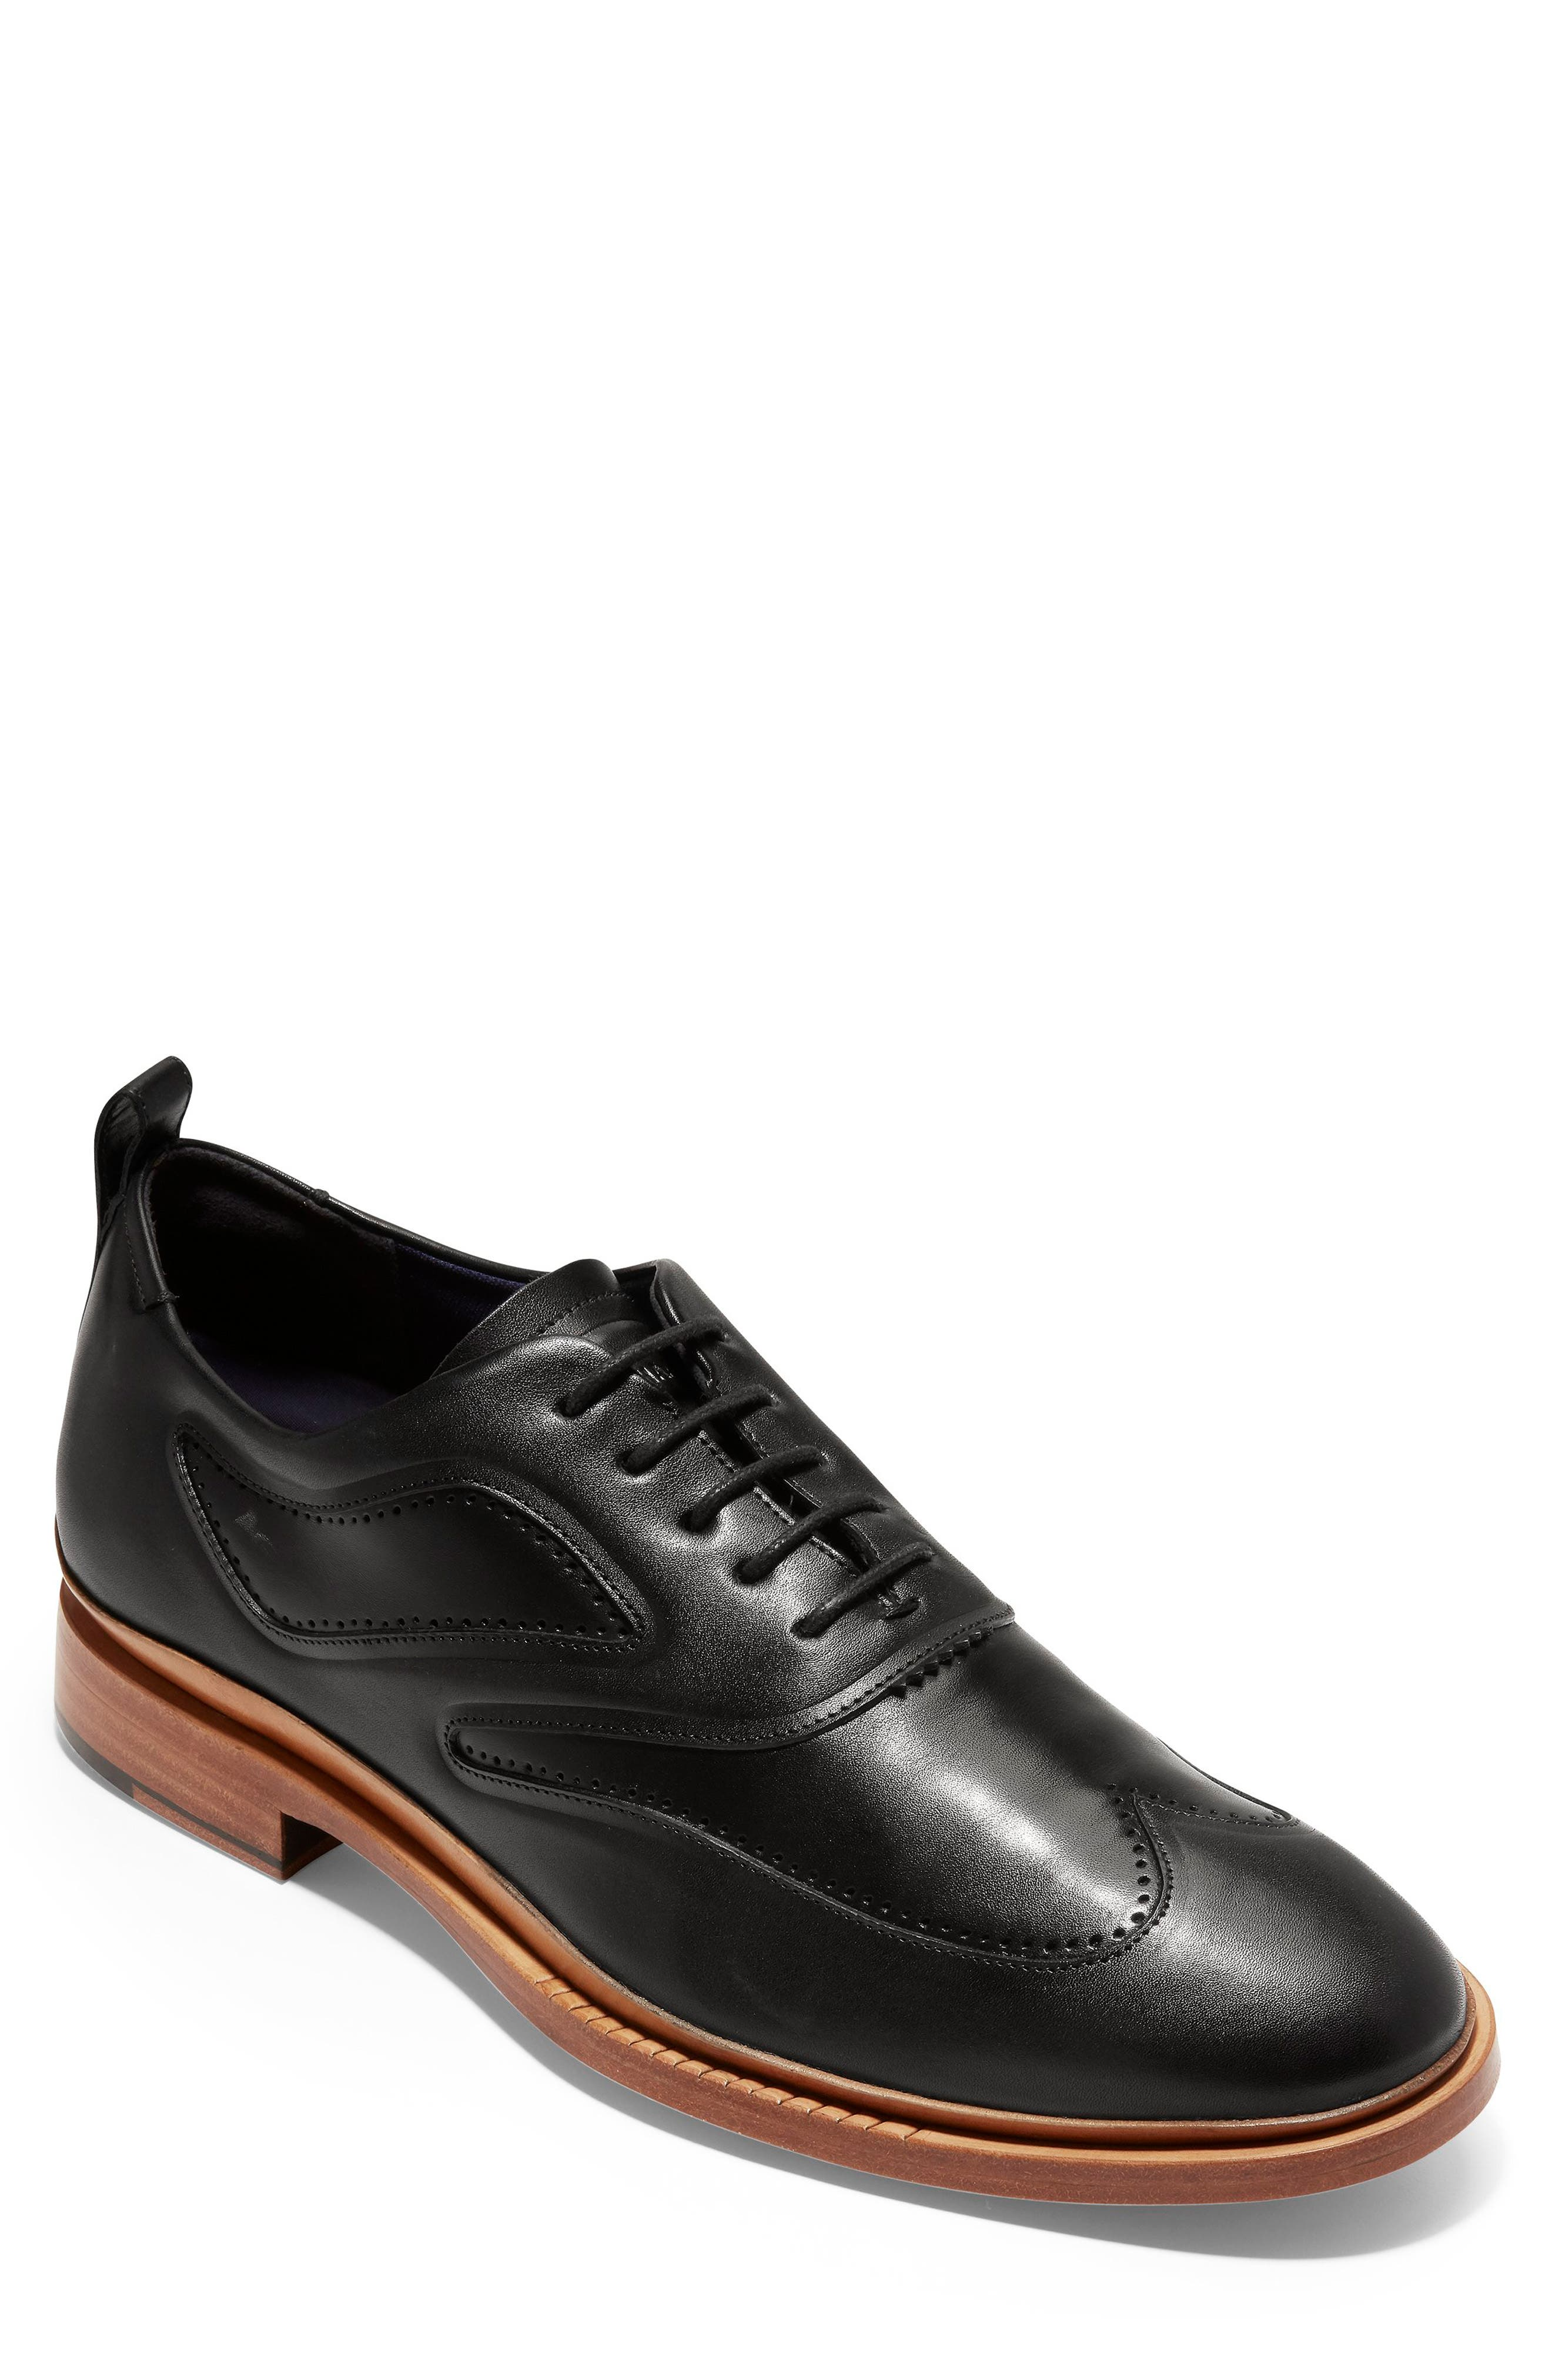 Washington Grand 2.0 Wingtip,                             Main thumbnail 1, color,                             001